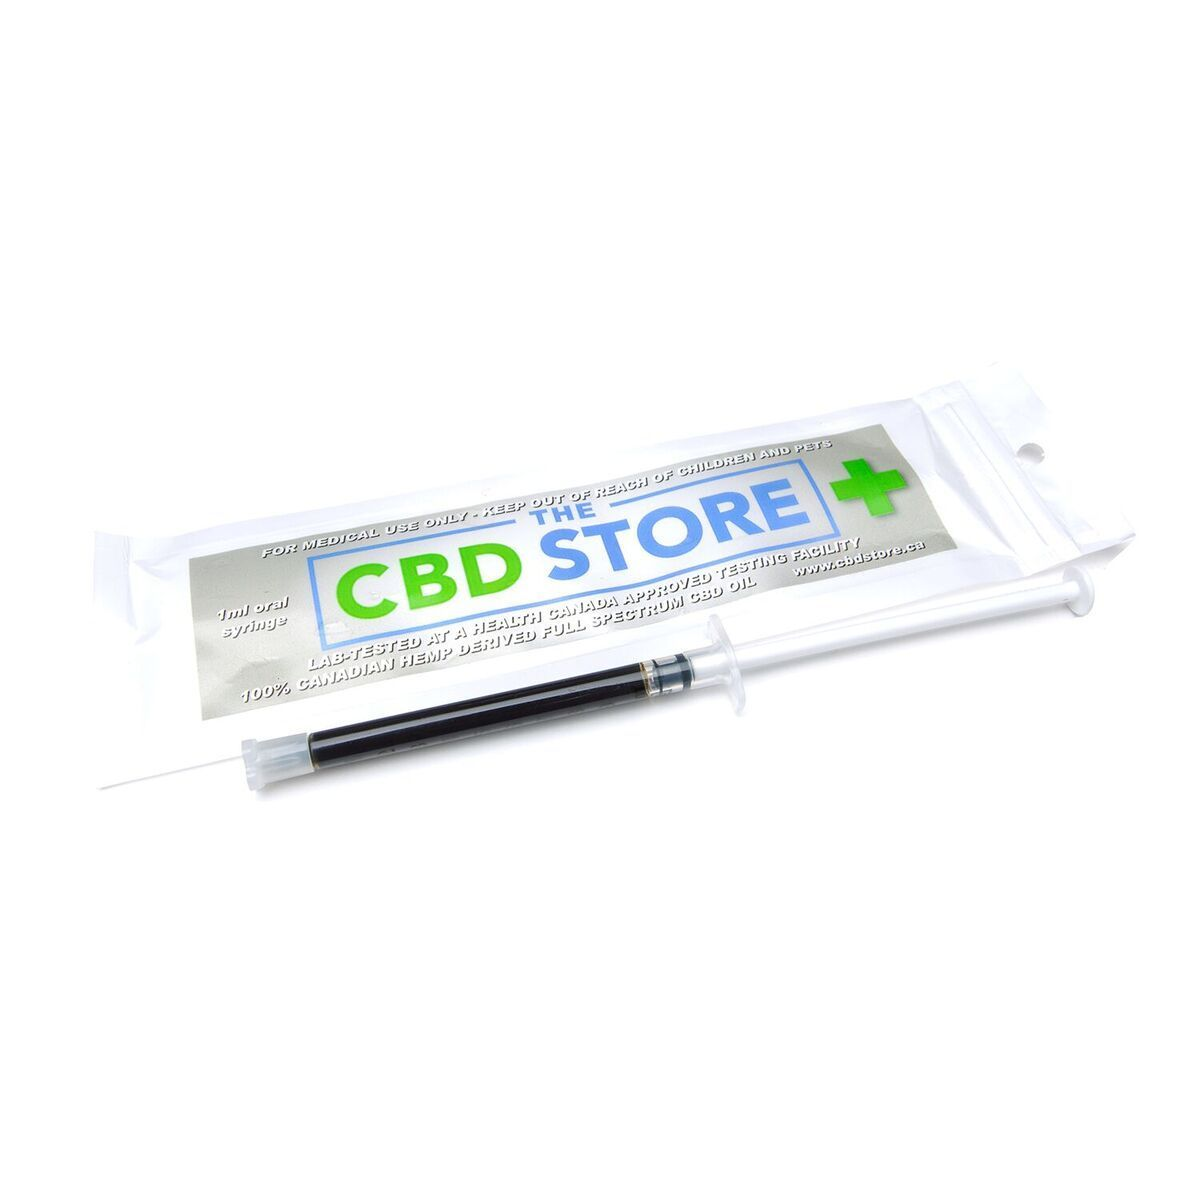 The CBD Store CBD Oil – 150mg CBD (1ml)